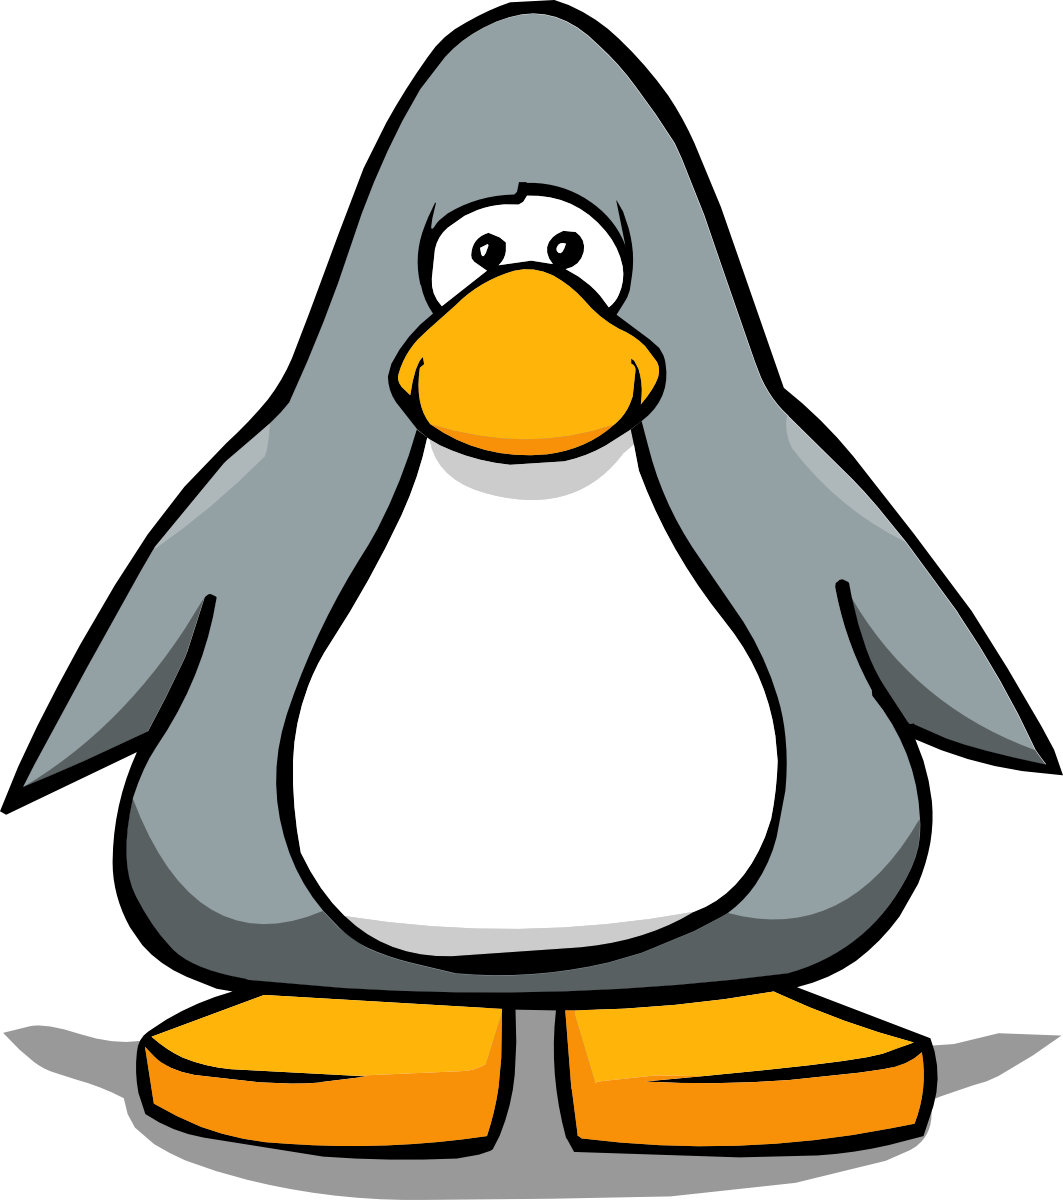 Penguin eating fish clipart png royalty free library Clipart penguin grey - Graphics - Illustrations - Free Download on ... png royalty free library